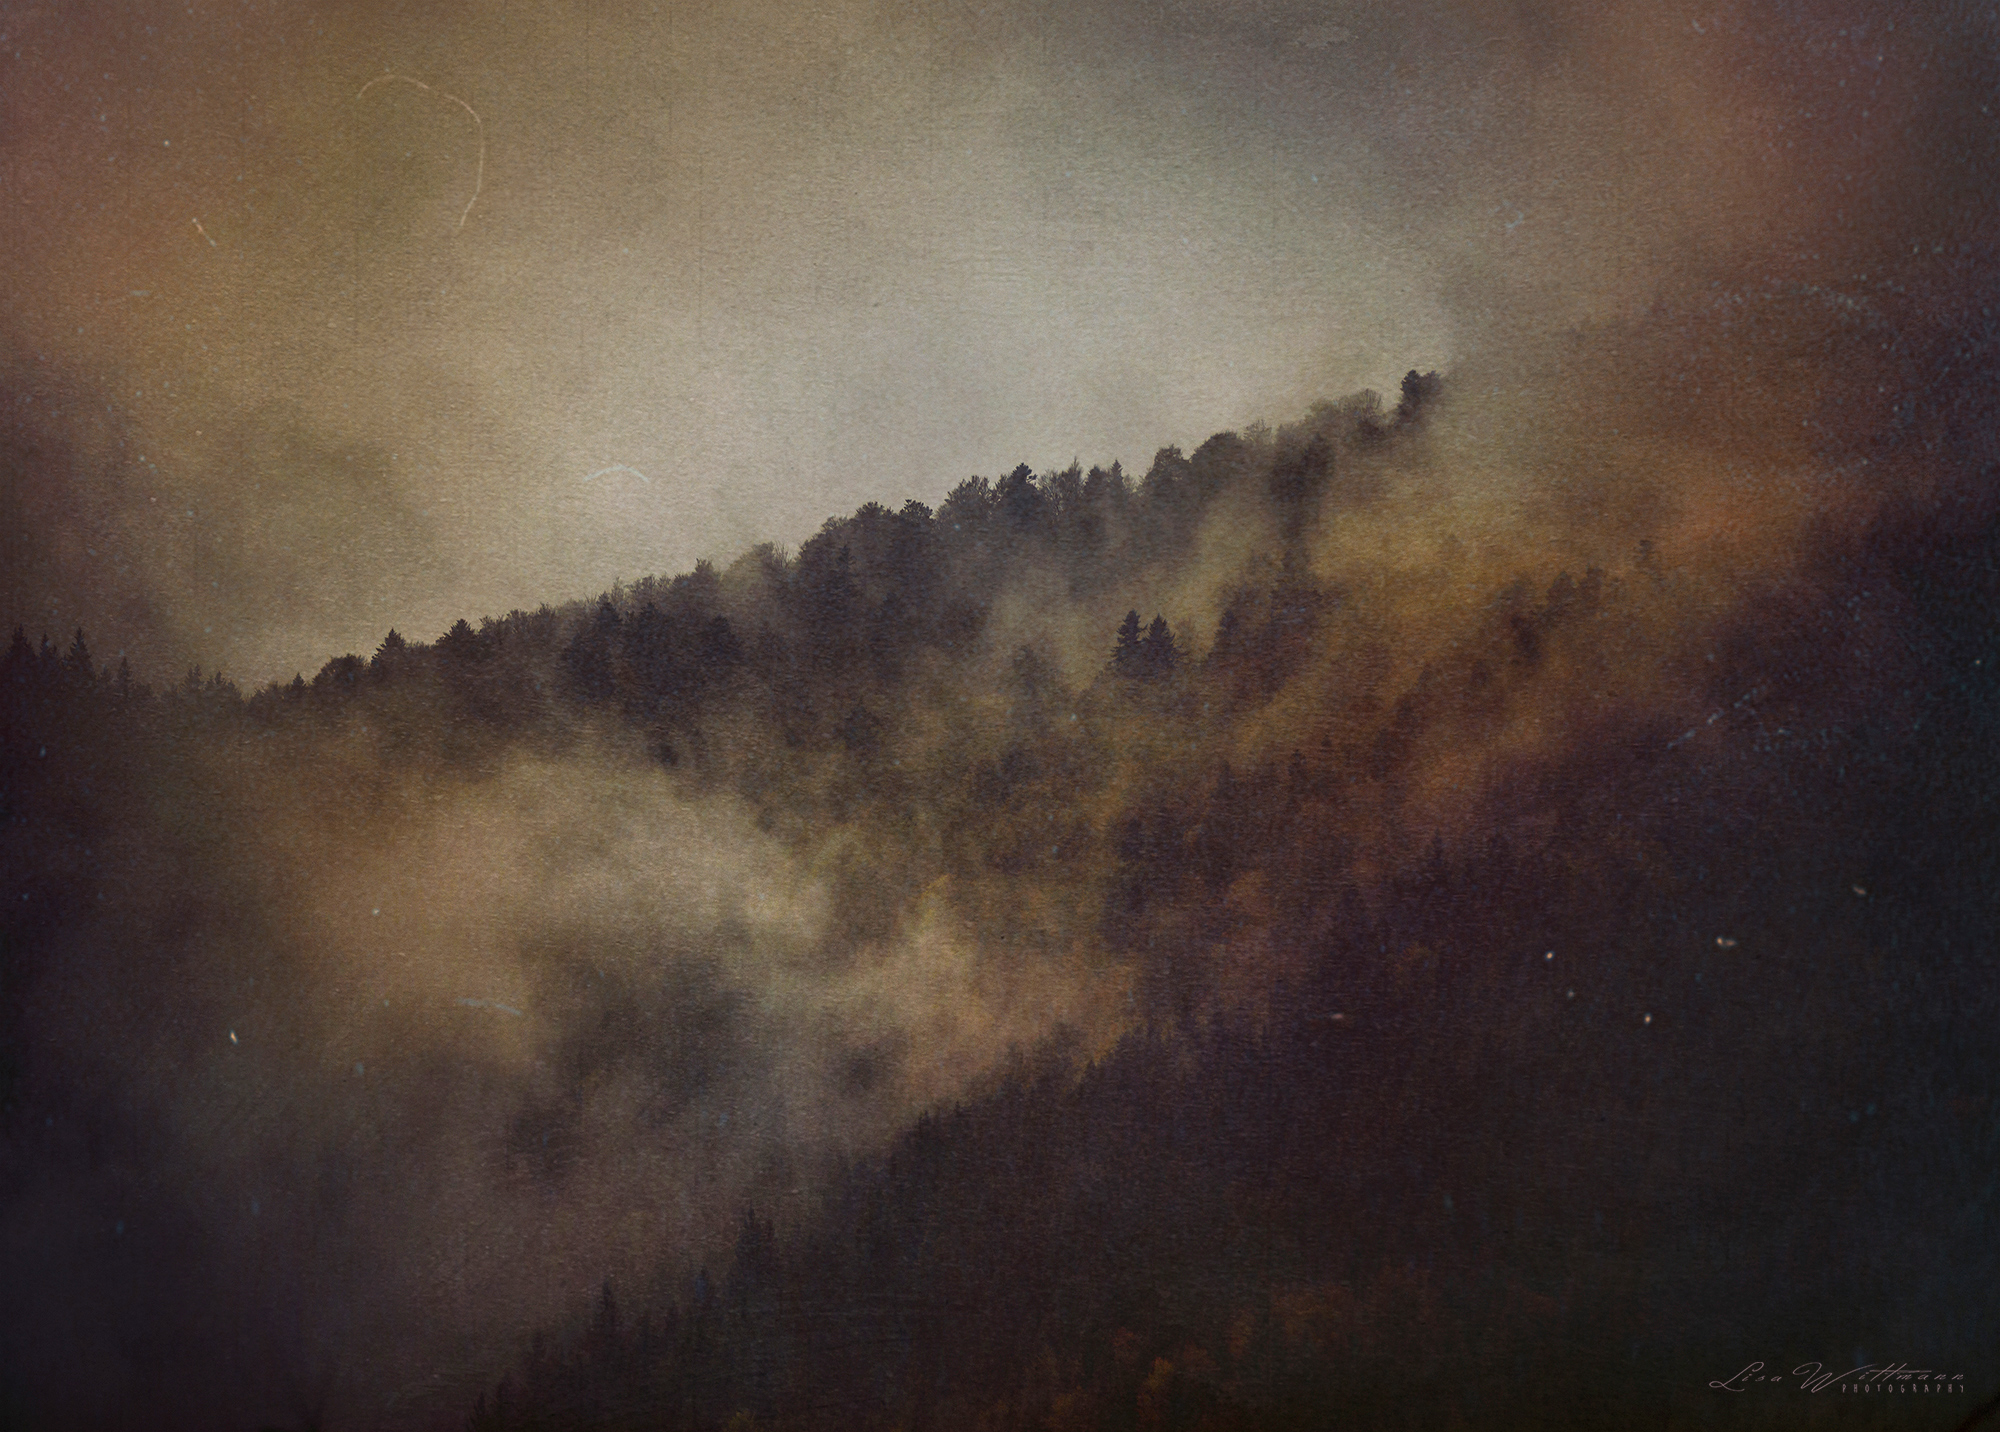 lisa_wittmann_photography_blackforest_fog_mist_coniferous_forest_moody_analogue_canon_gloomy_dream_beautiful_dream_fire_burn_germany_photoshop_insta_